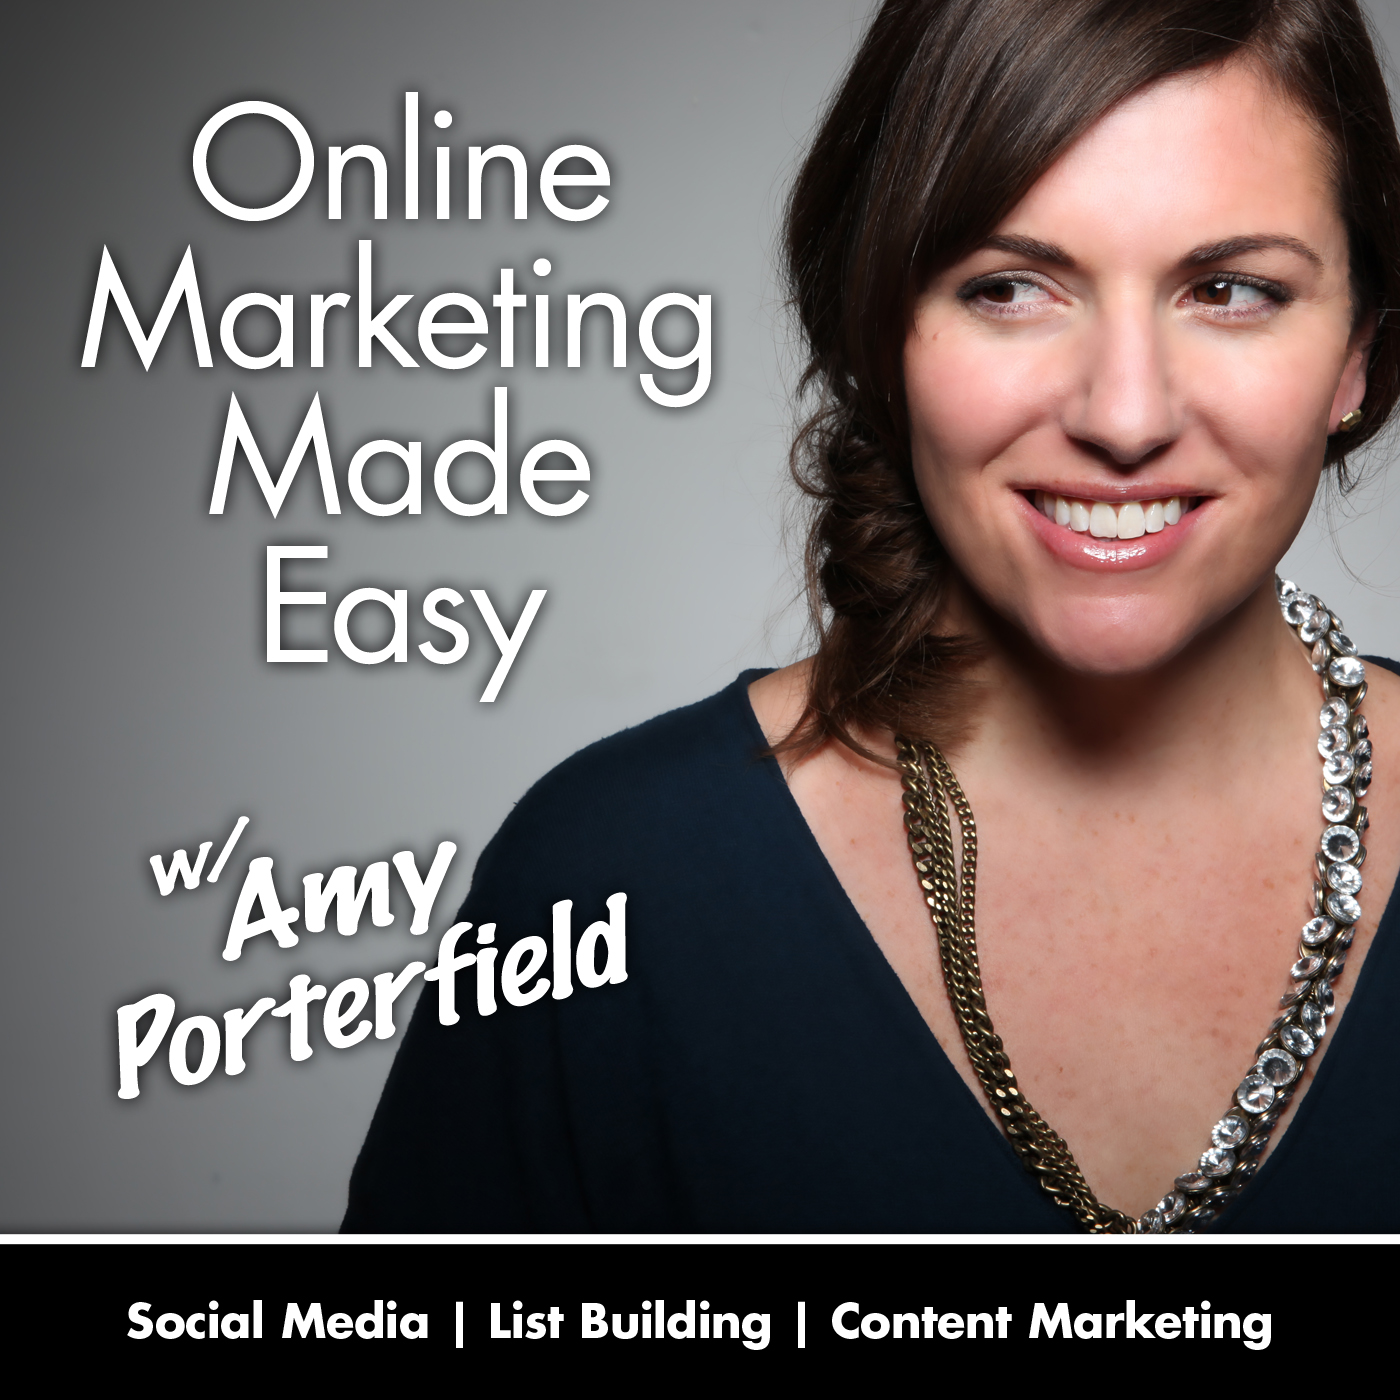 online marketing made easy with Amy Porterfield.jpg